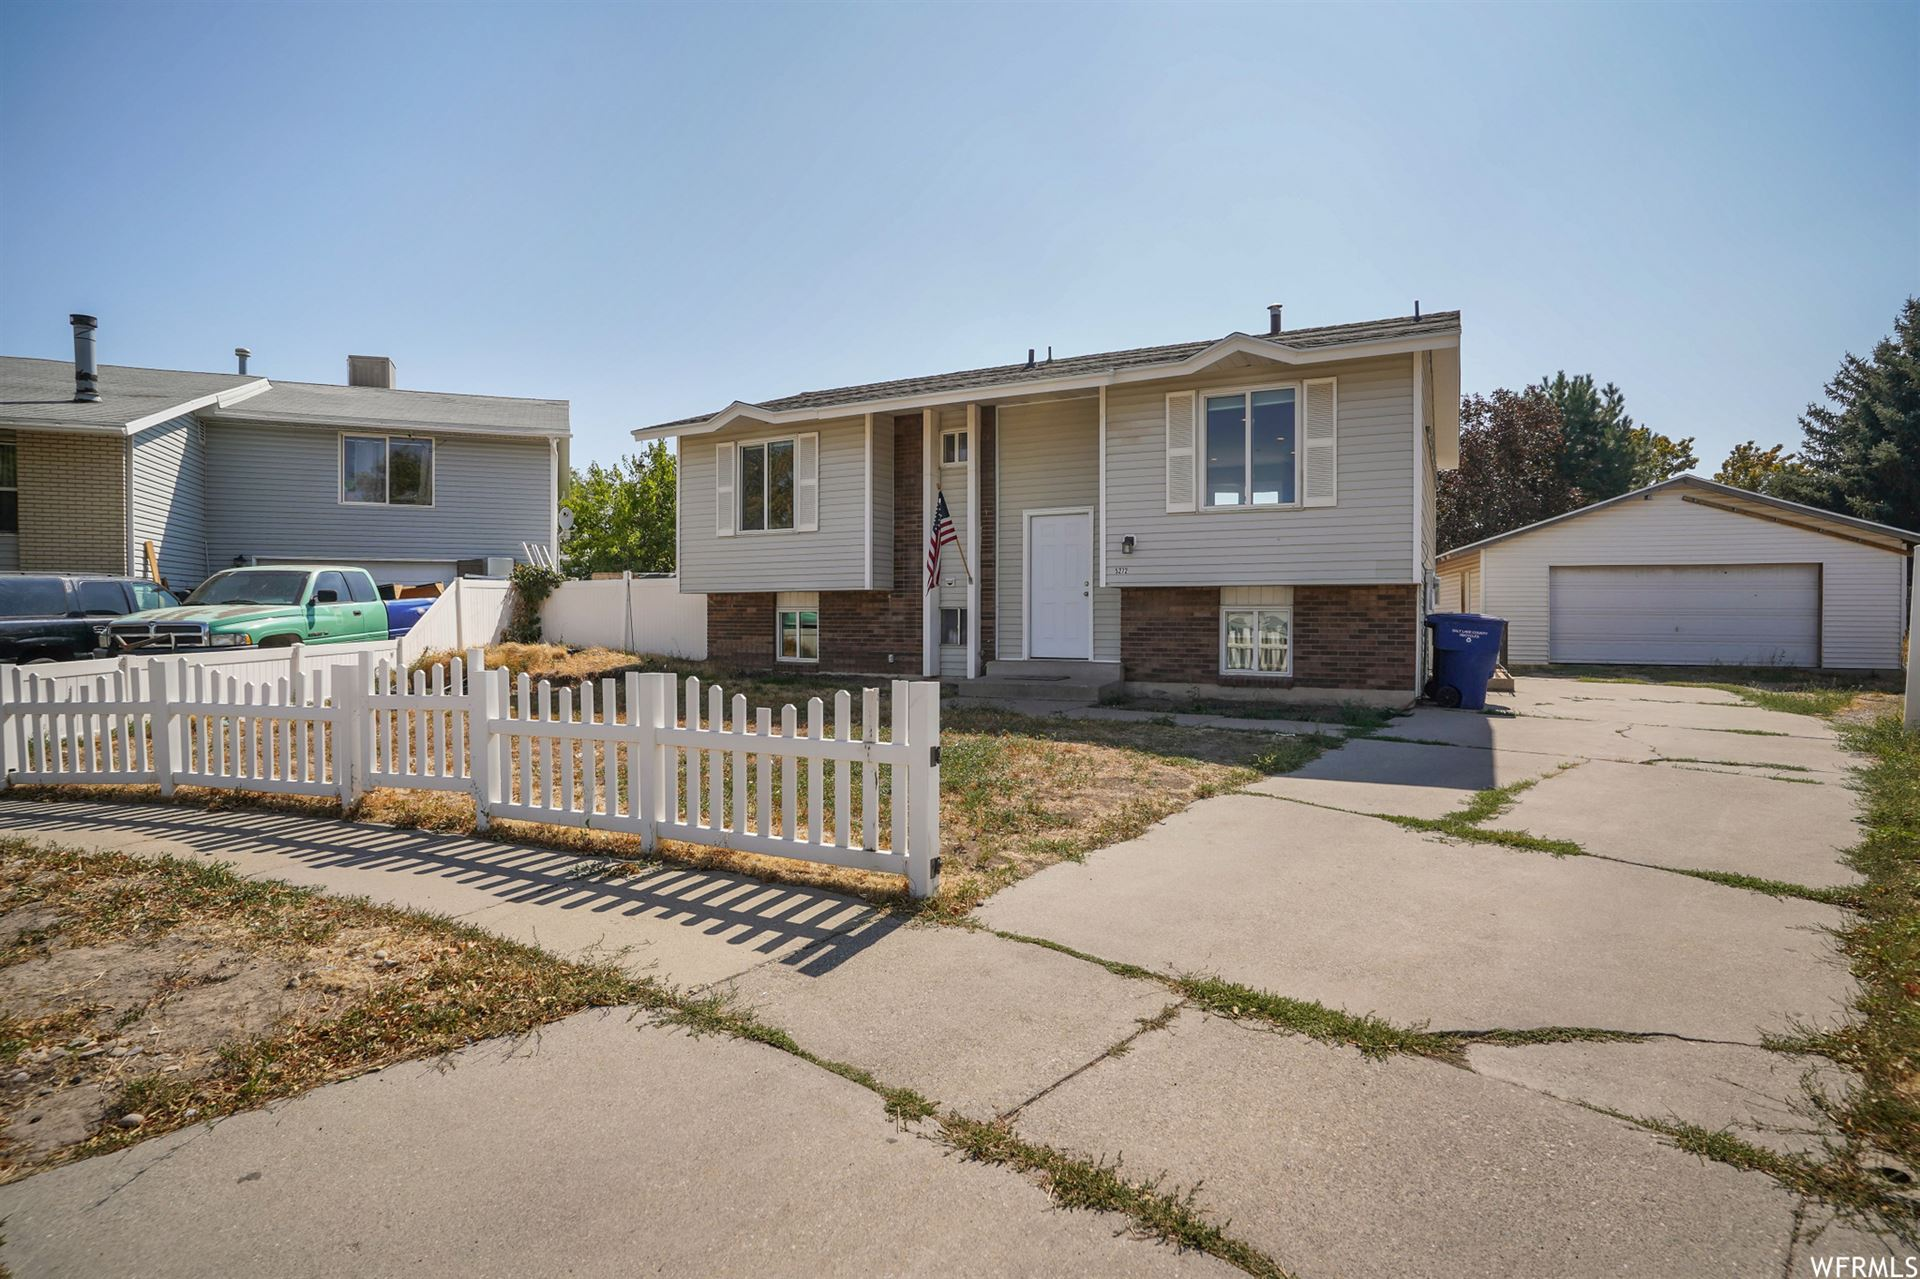 Photo of 5272 S SHAMROCK CIR, Salt Lake City, UT 84118 (MLS # 1704138)